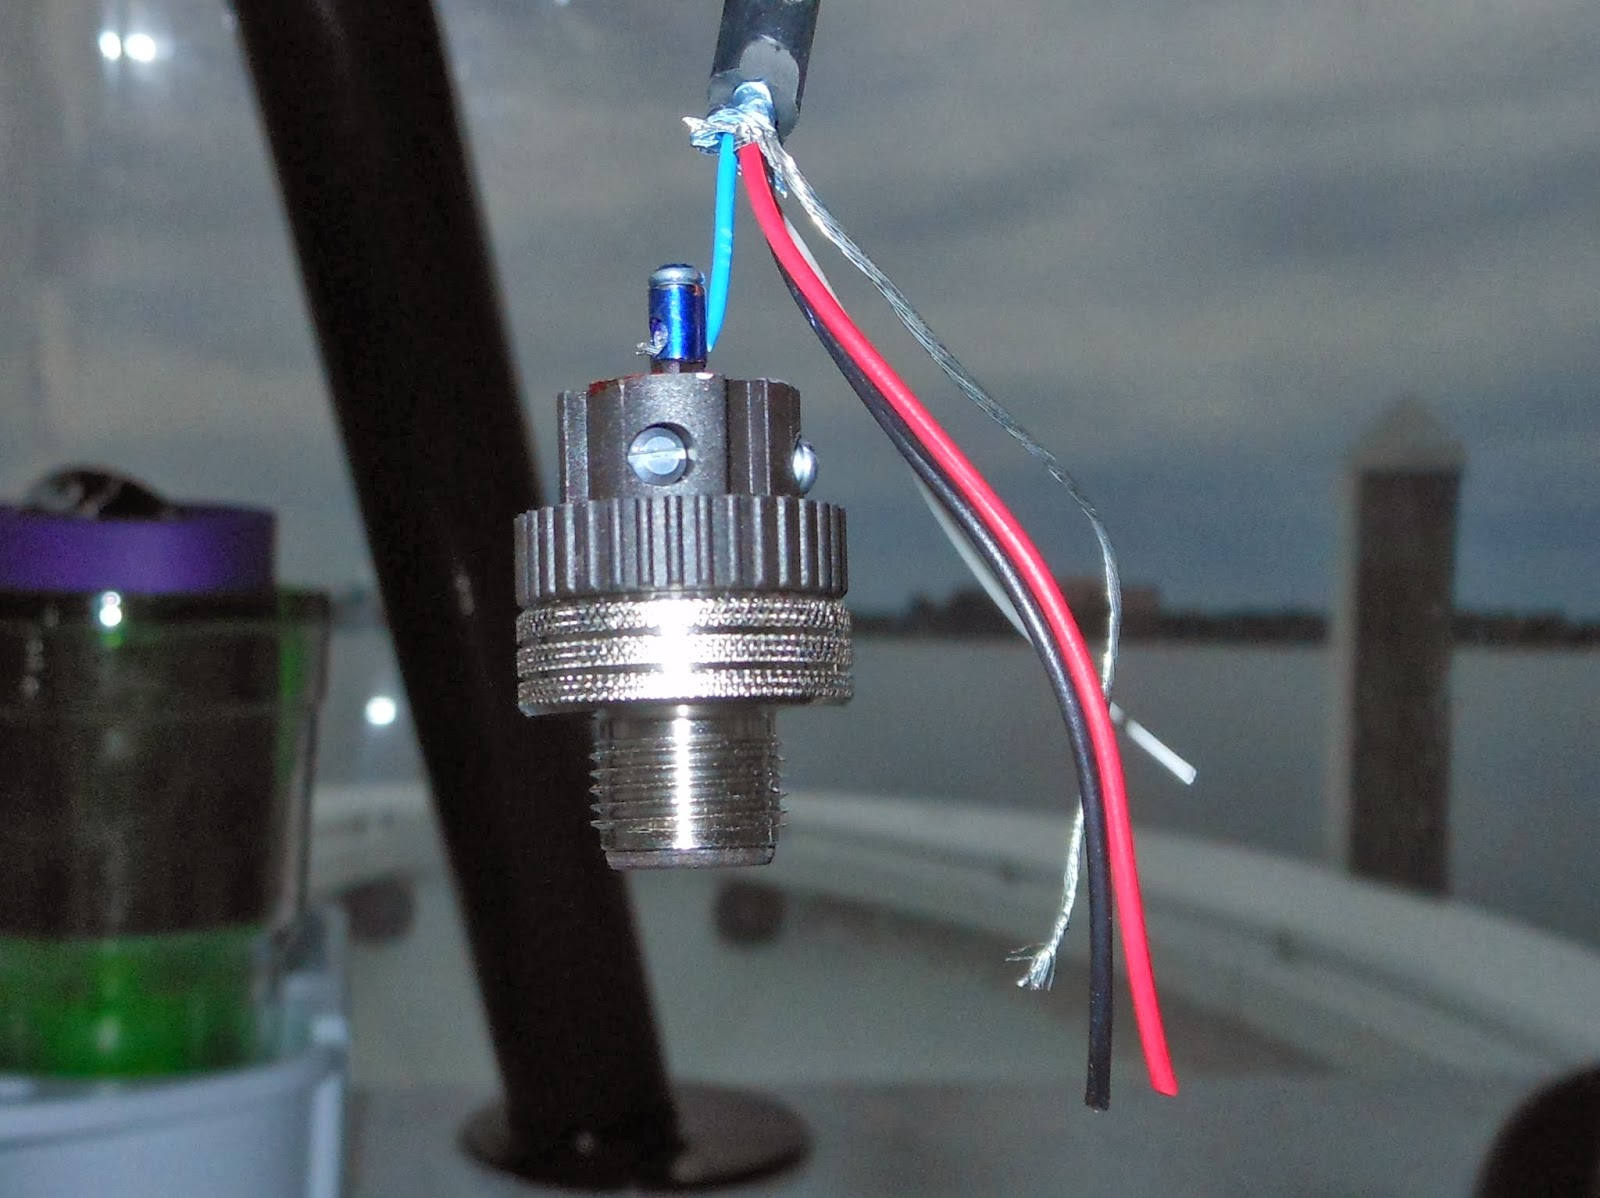 The Marine Installers Rant Field Replaceable Nmea 2000 Connectors T Connector Wiring Diagram I Use These To Extract Pull Wires Out Of Small Holes And Before You Ask No Ends Arent Burnt